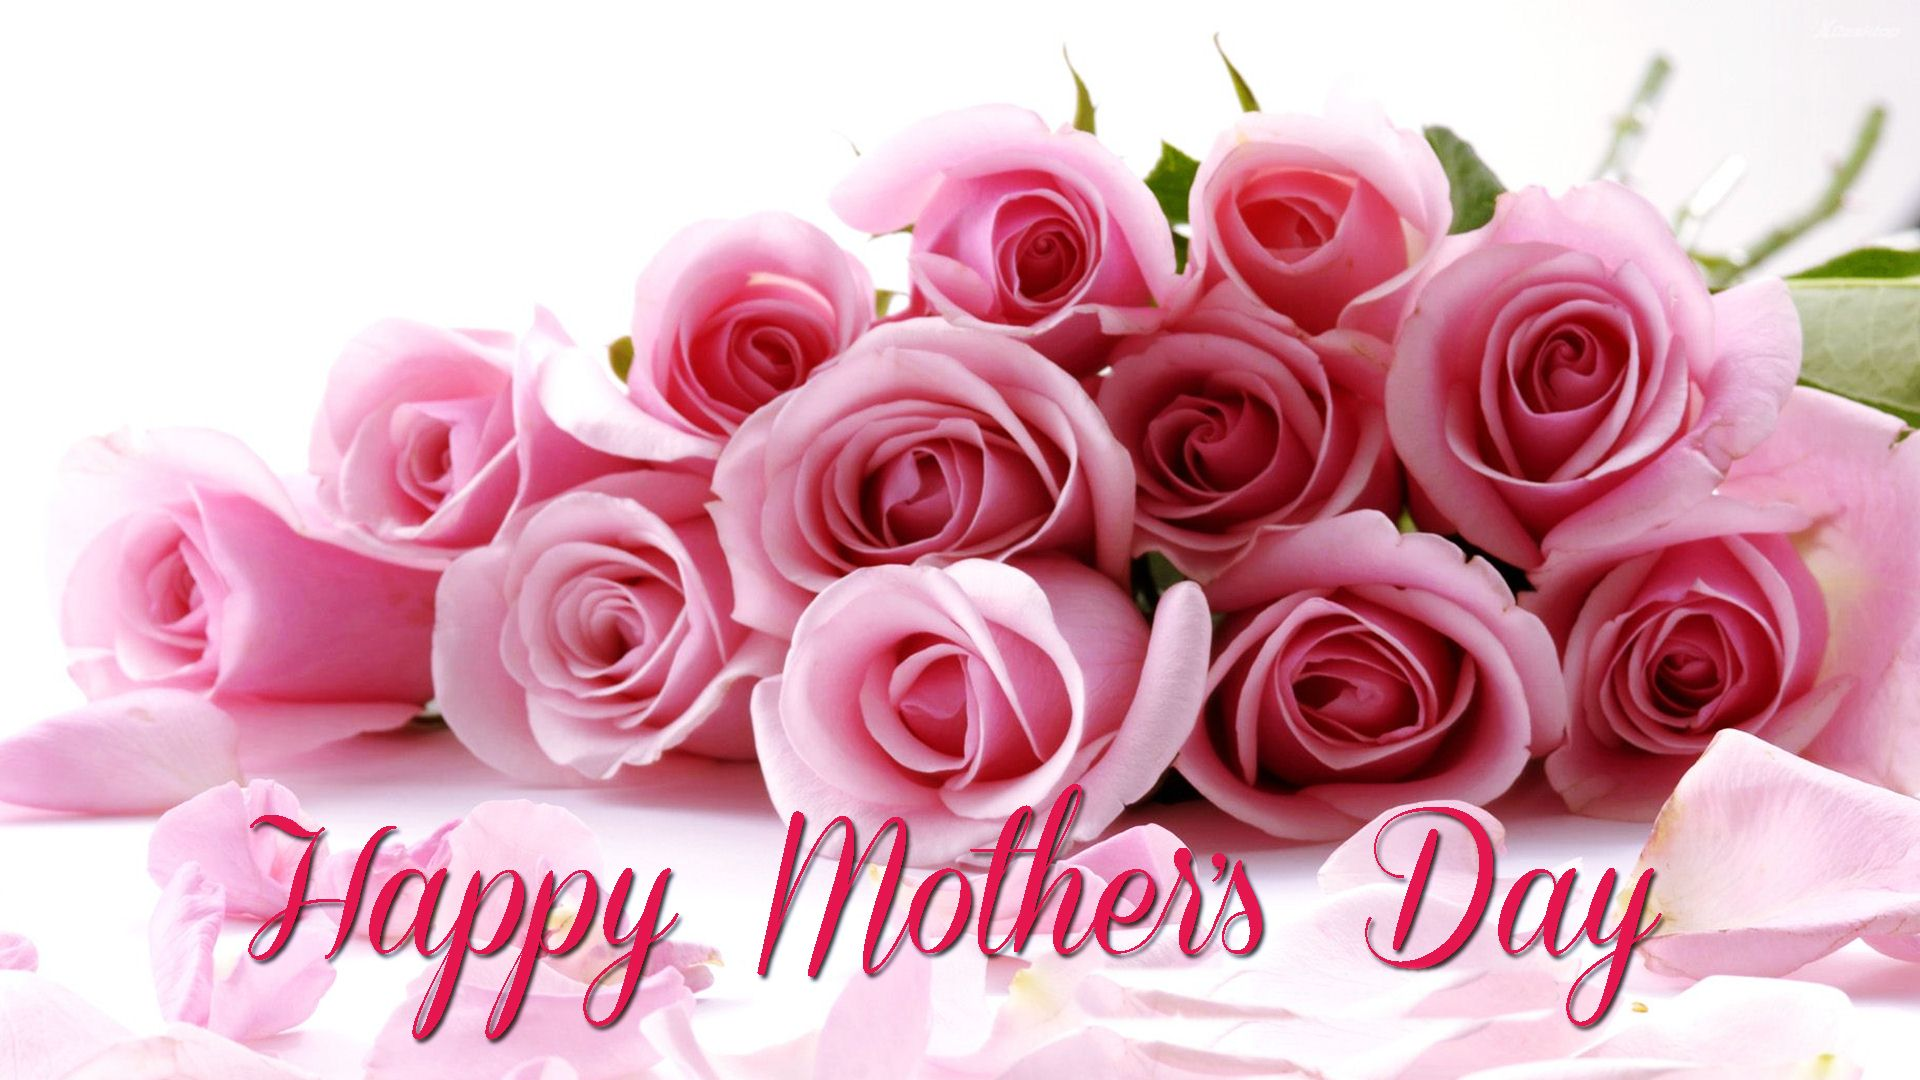 Mothers-day-wallpaper-images